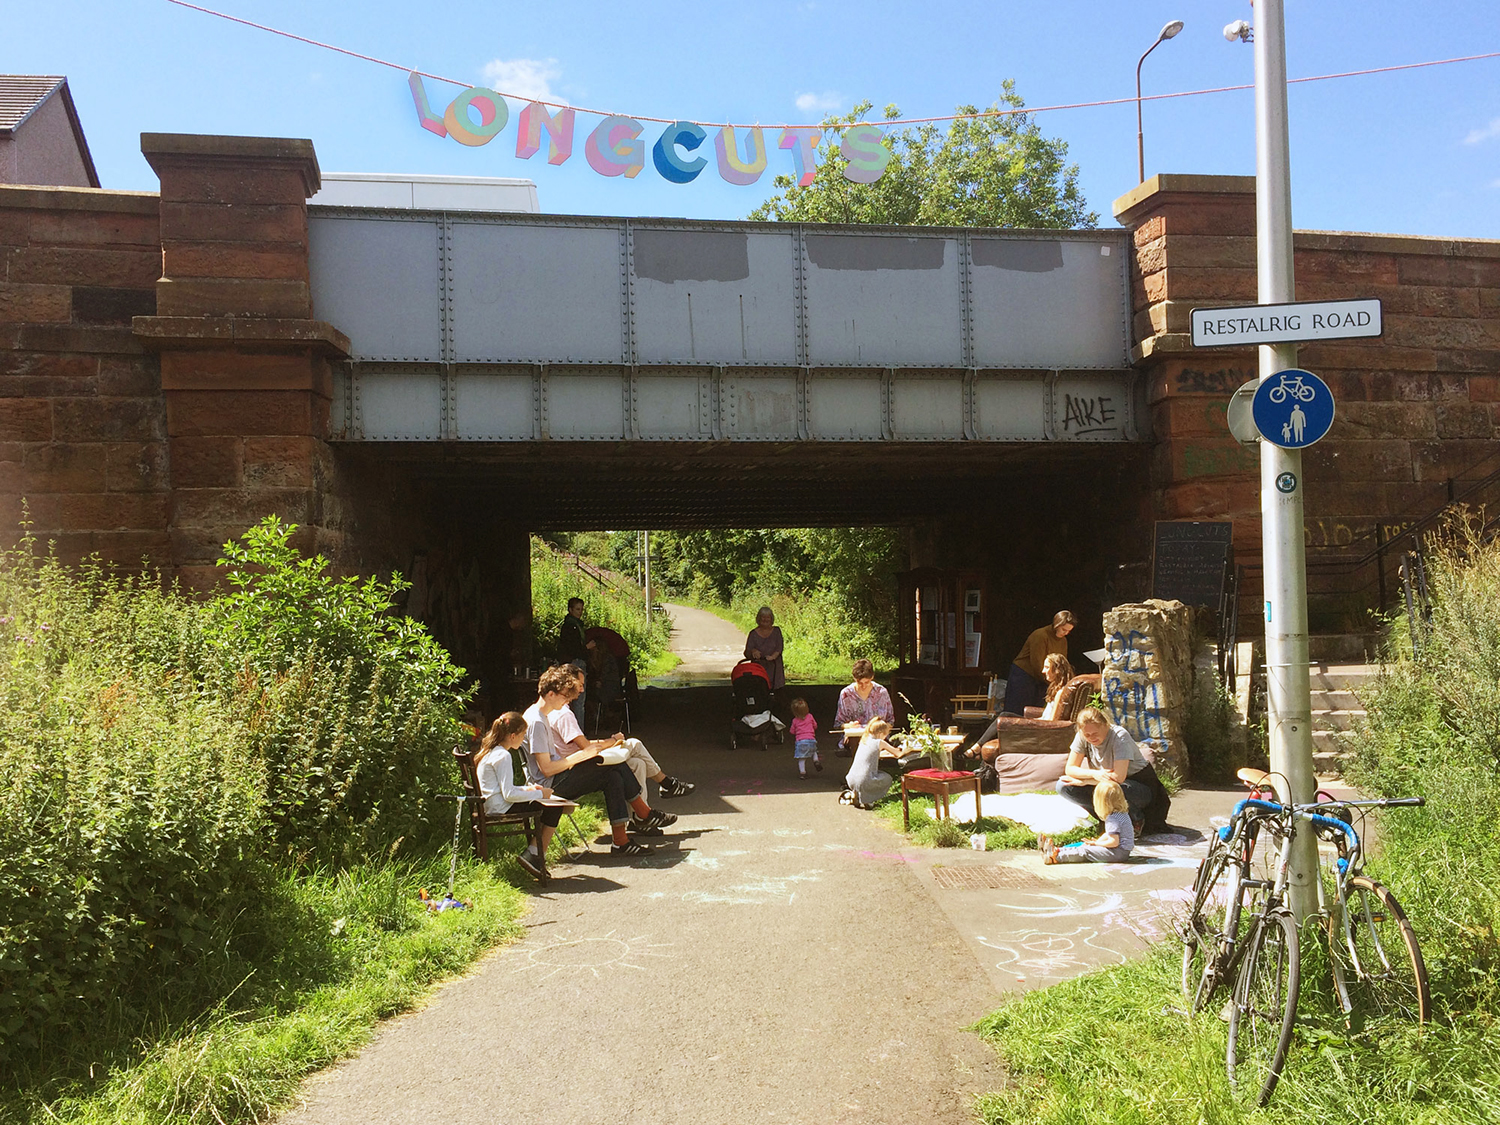 Civic Soup and their Longcuts project, Restalrig Road